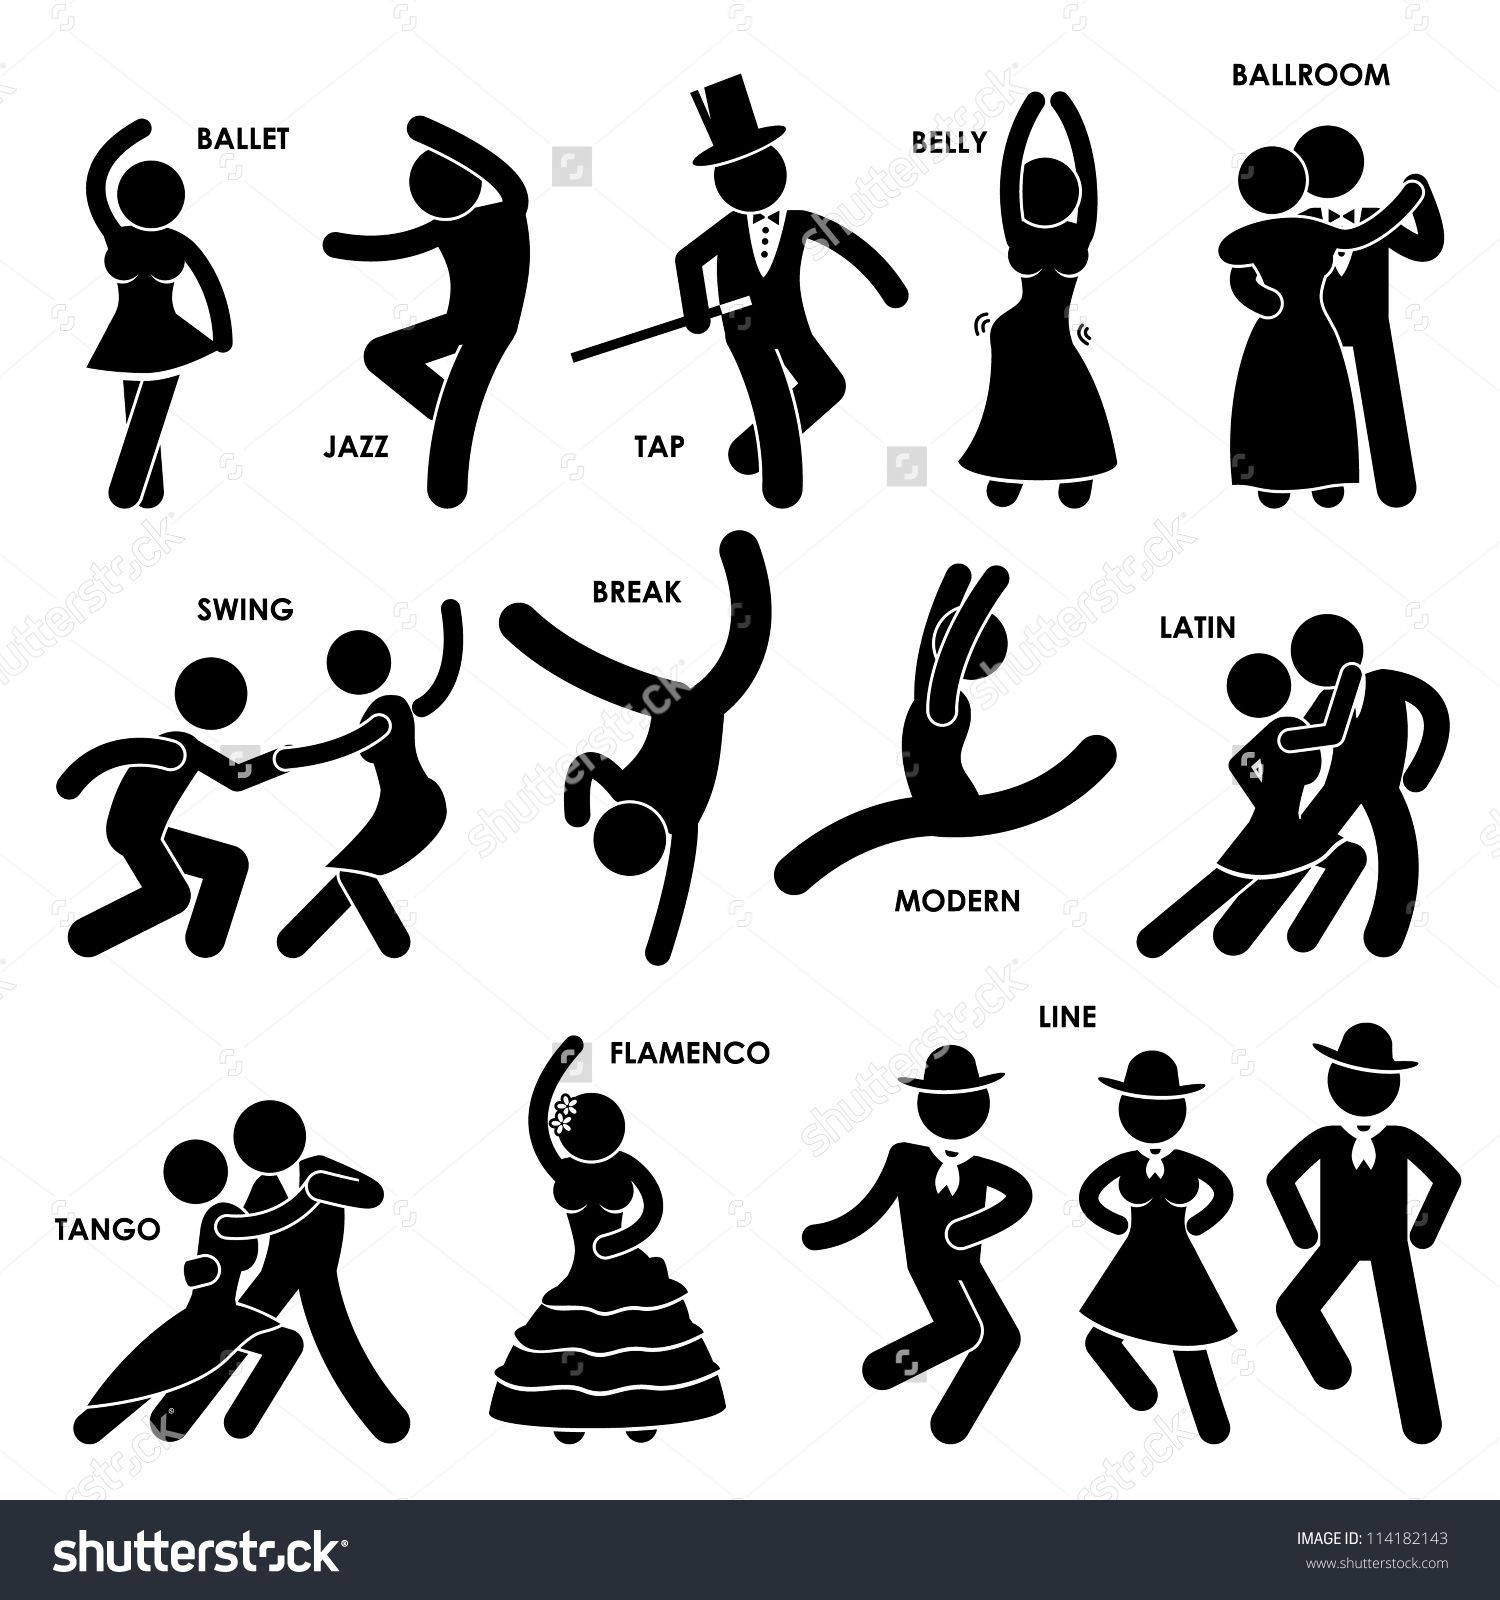 dance moves Dance images, Ballroom dance photography